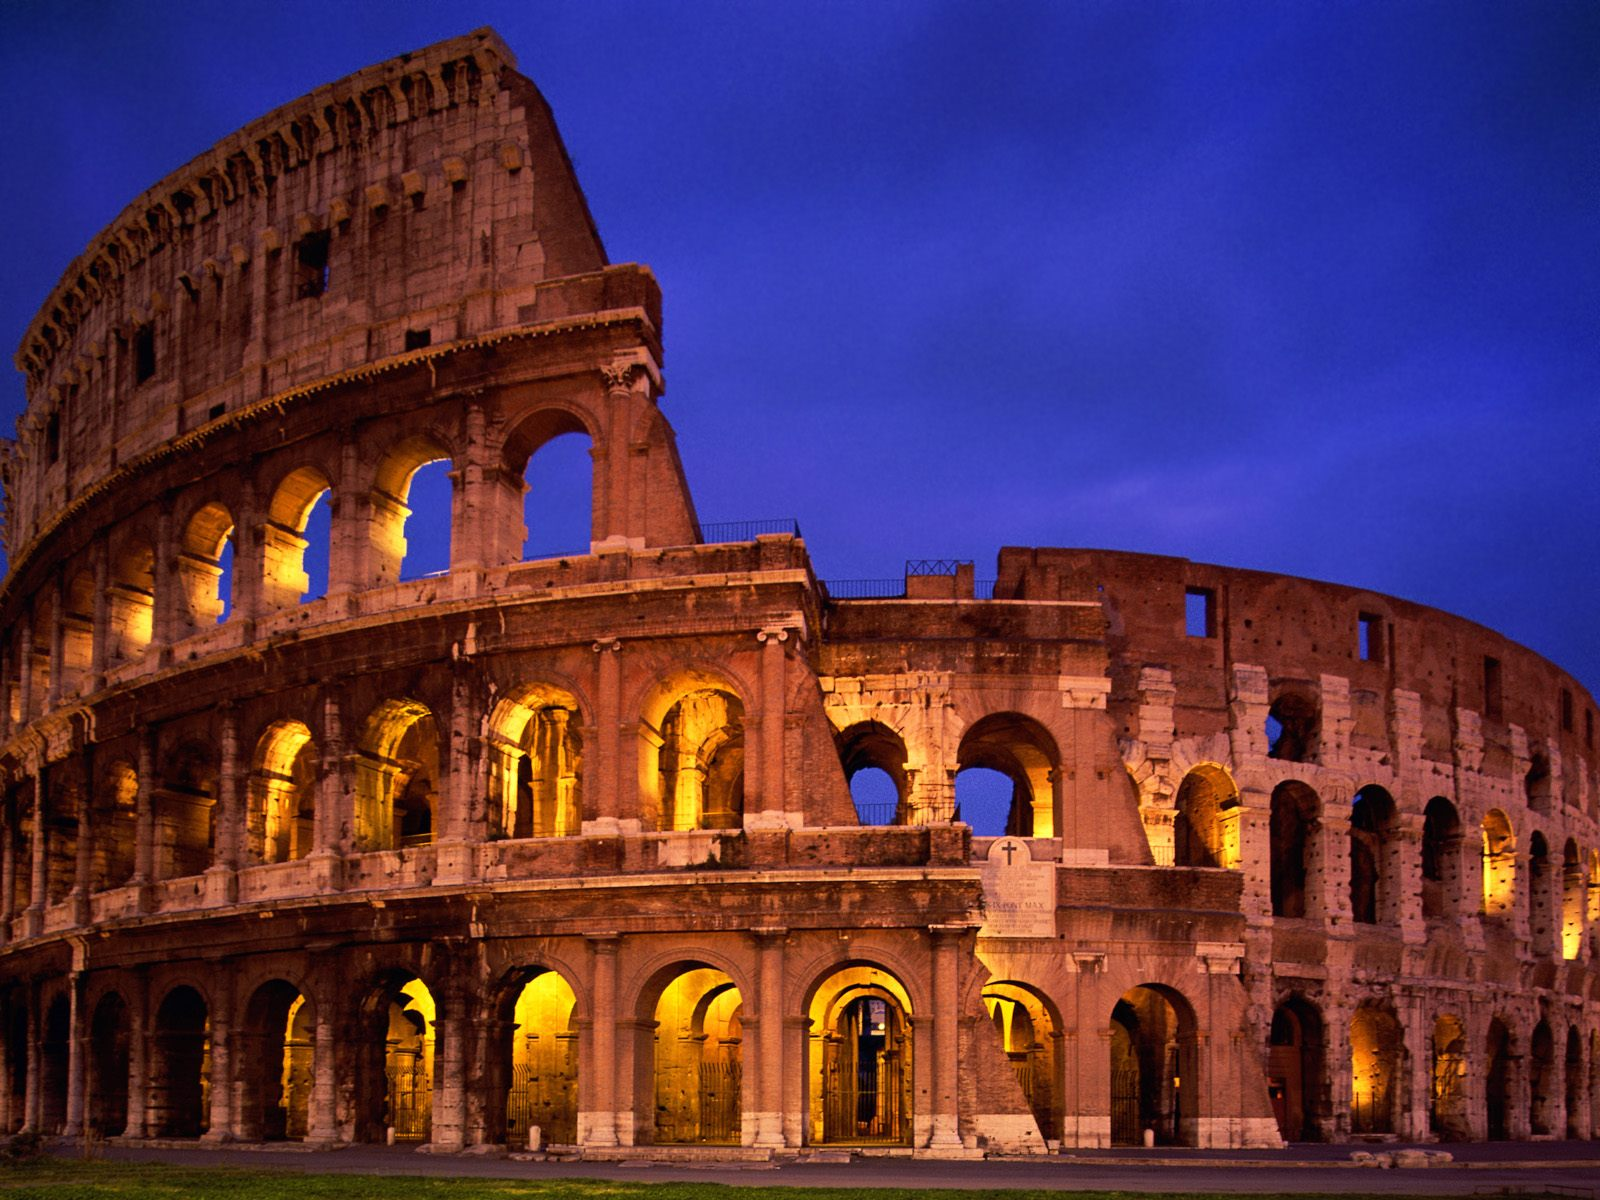 Colosseum General Information